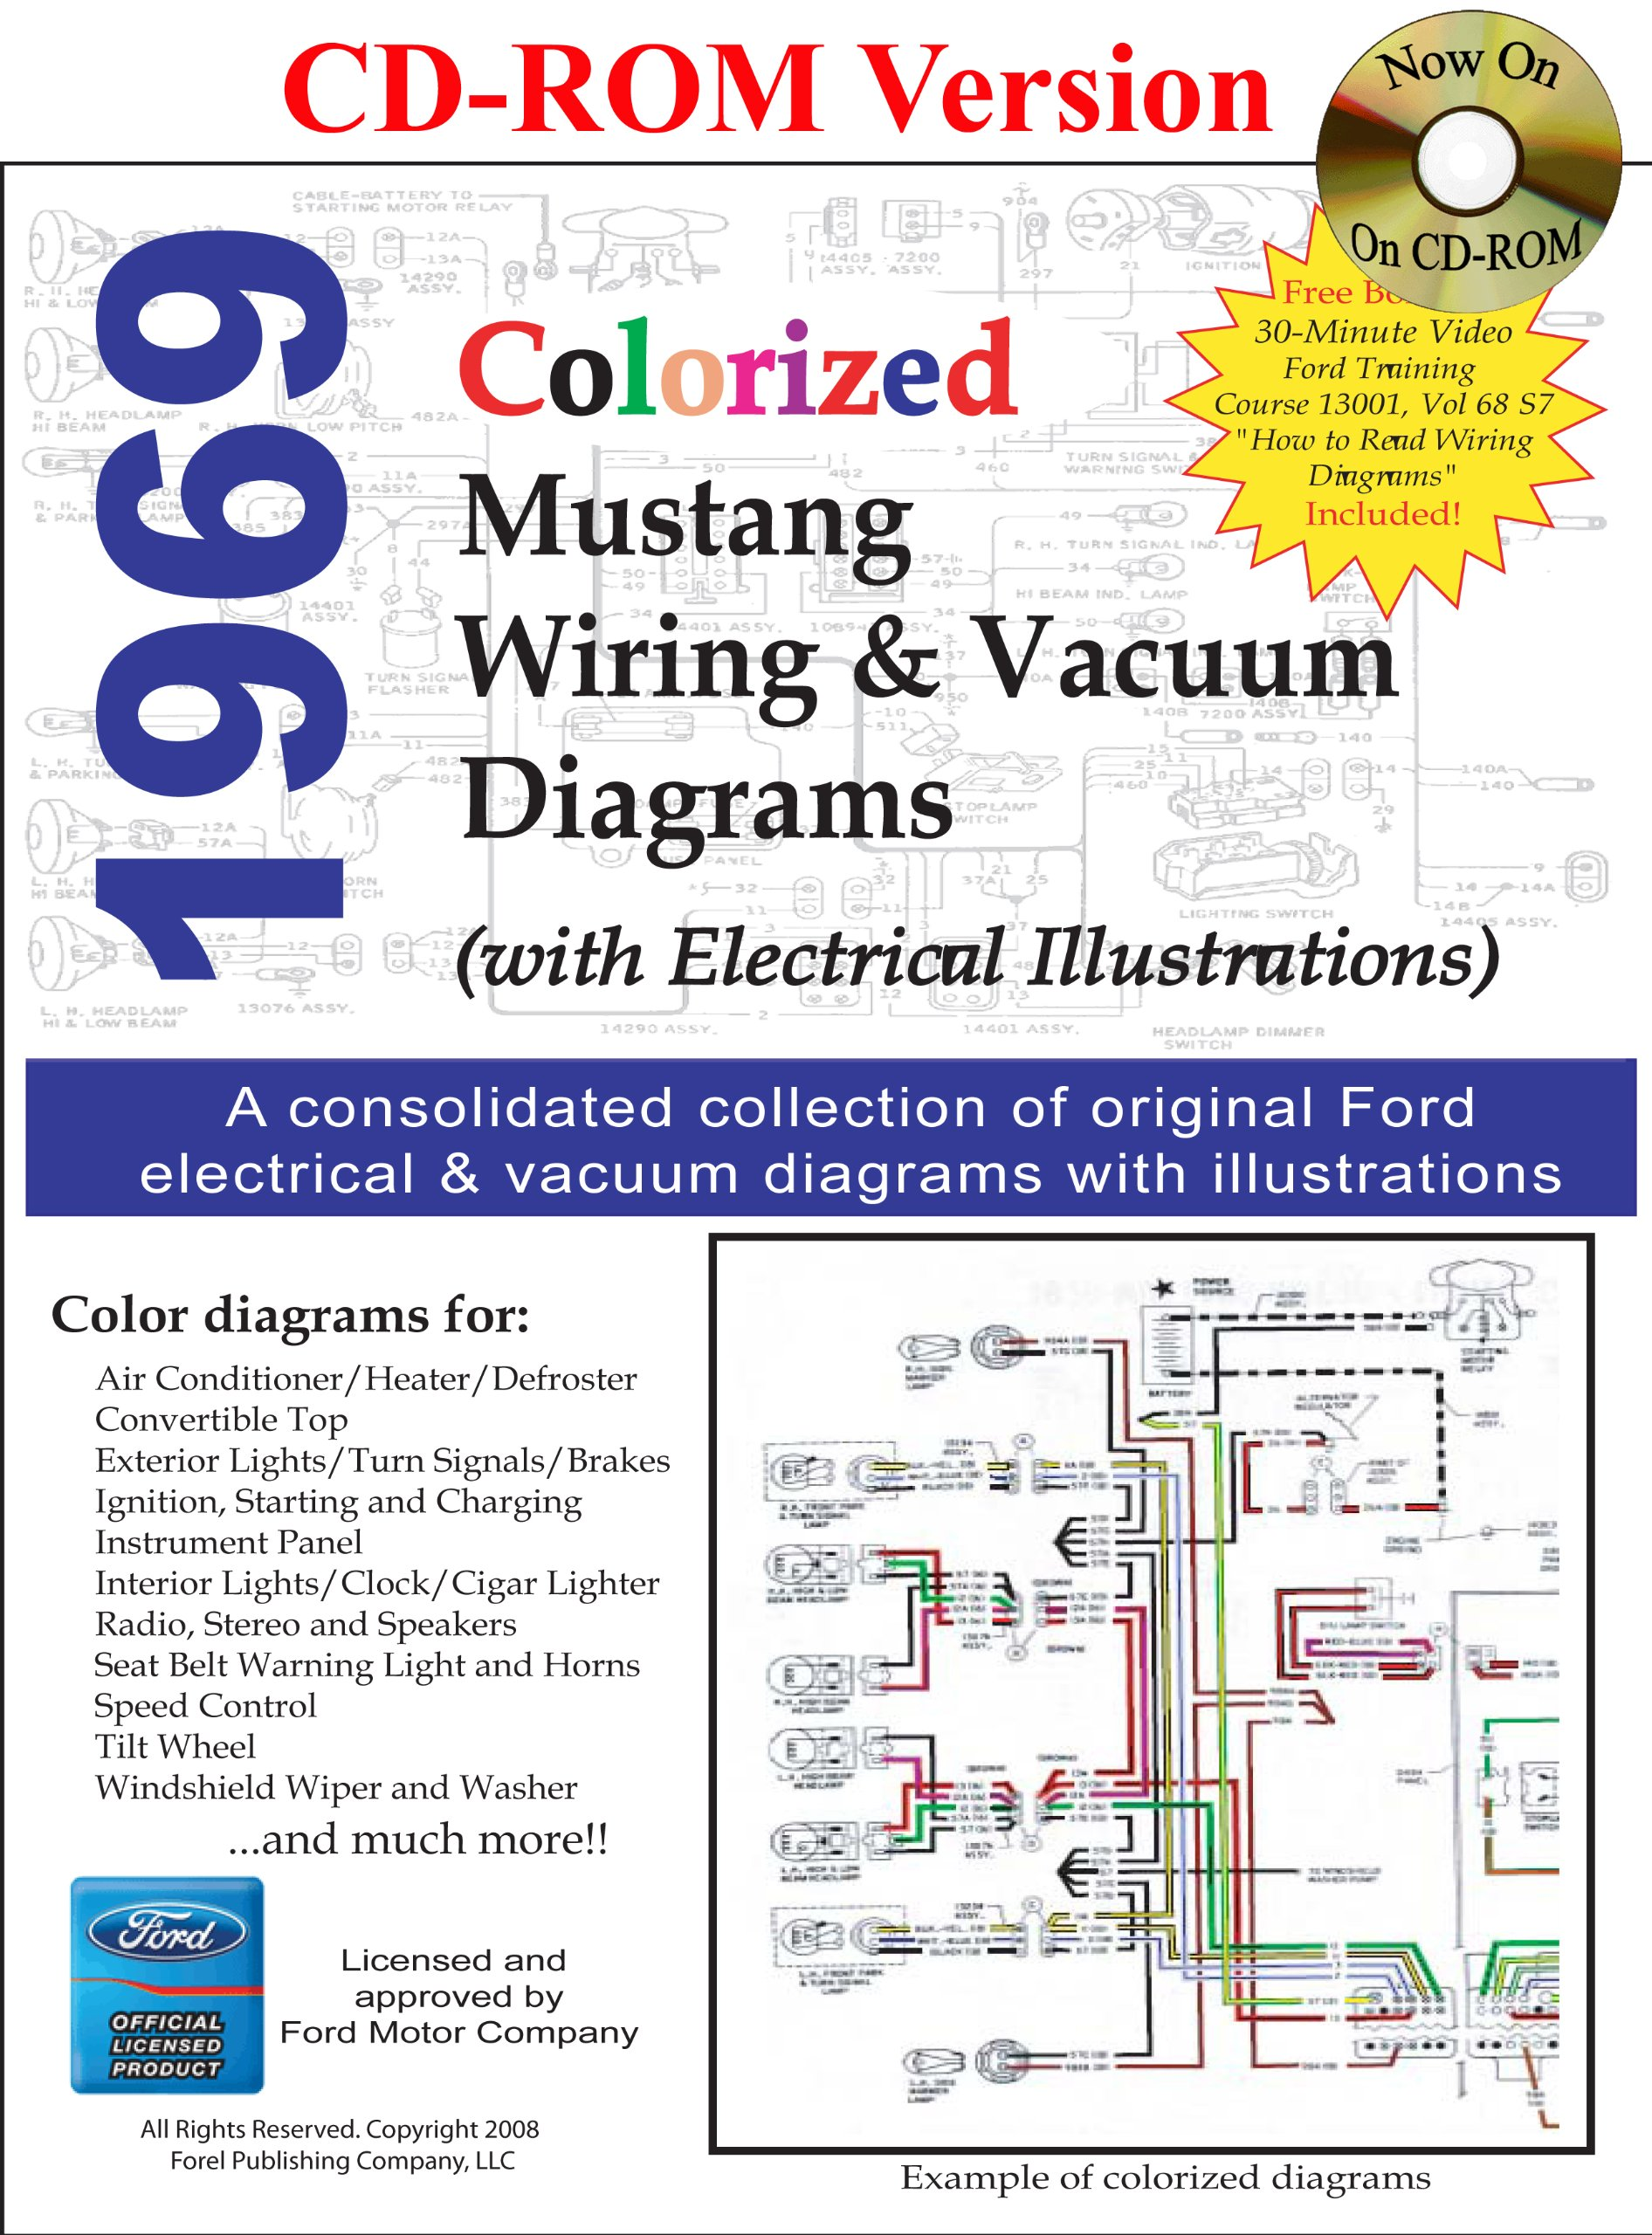 1969 Colorized Mustang Wiring Vacuum Diagrams David E Leblanc Ford Clock 9781603710282 Books